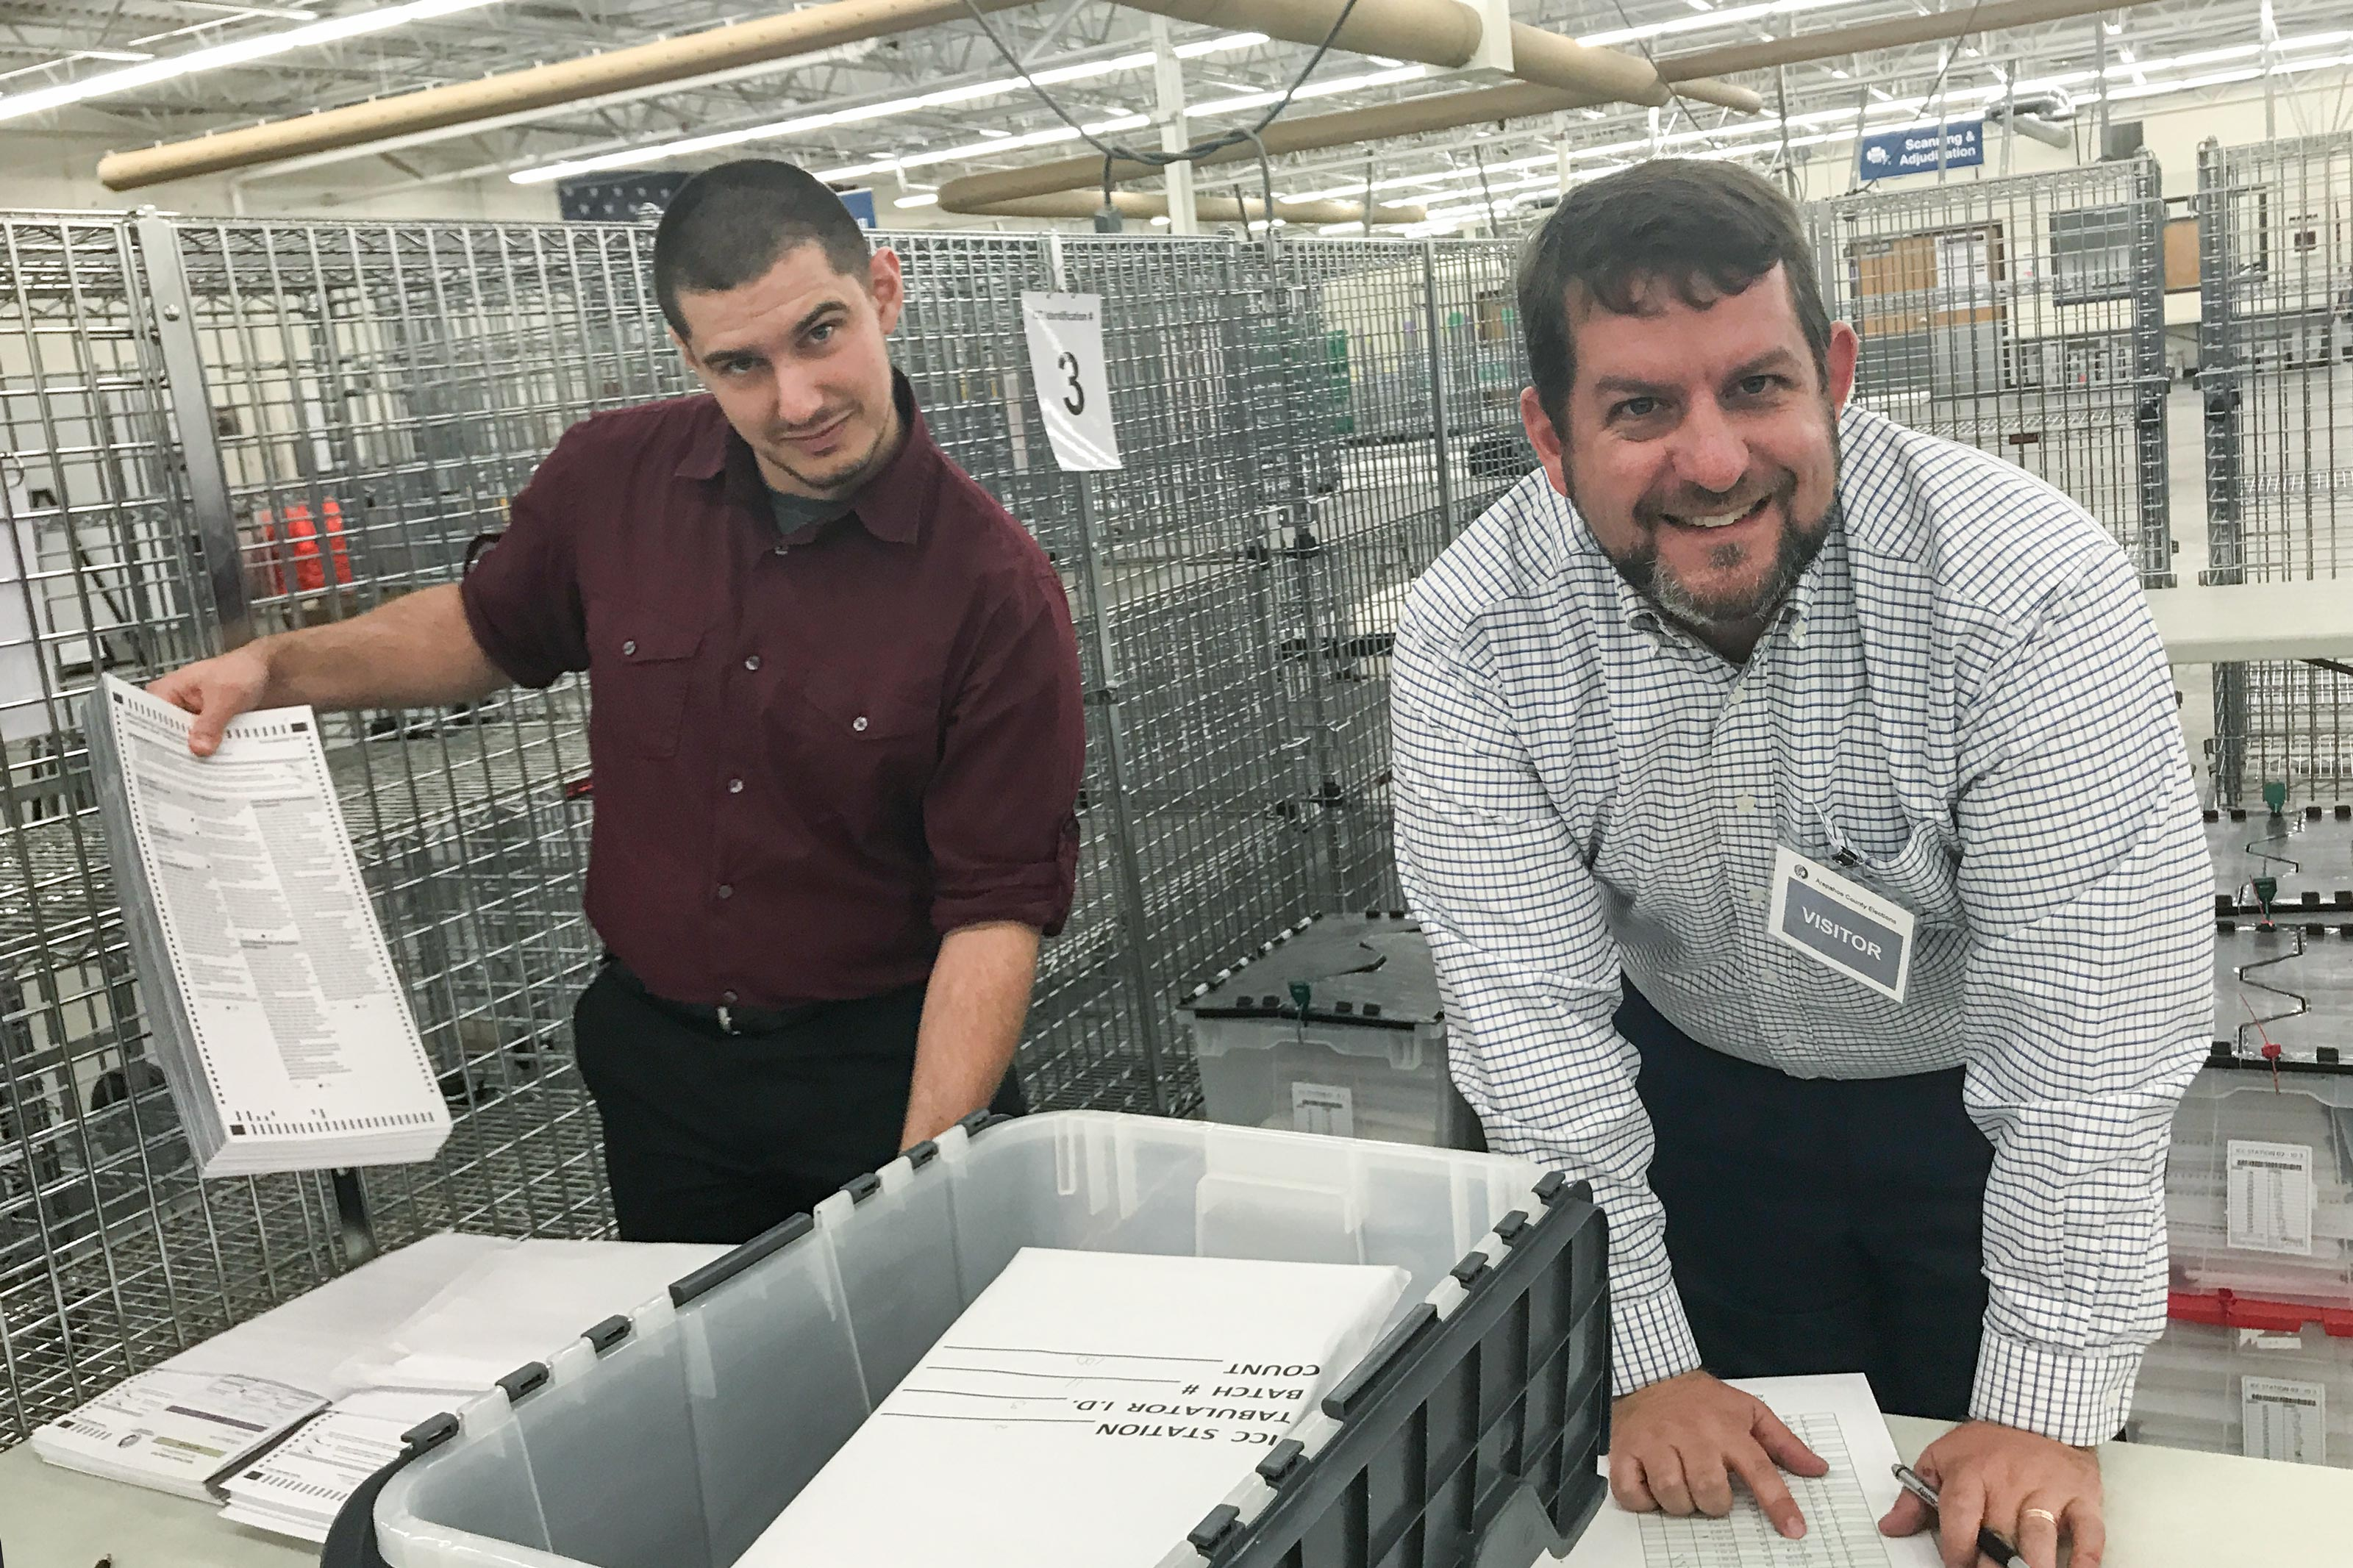 <p>Arapahoe County Clerk staffer Caleb Hendrich, left, and U.S. Election Commissioner Matt Masterson begin the process of pulling ballots to be audited at the Arapahoe County election warehouse.</p>